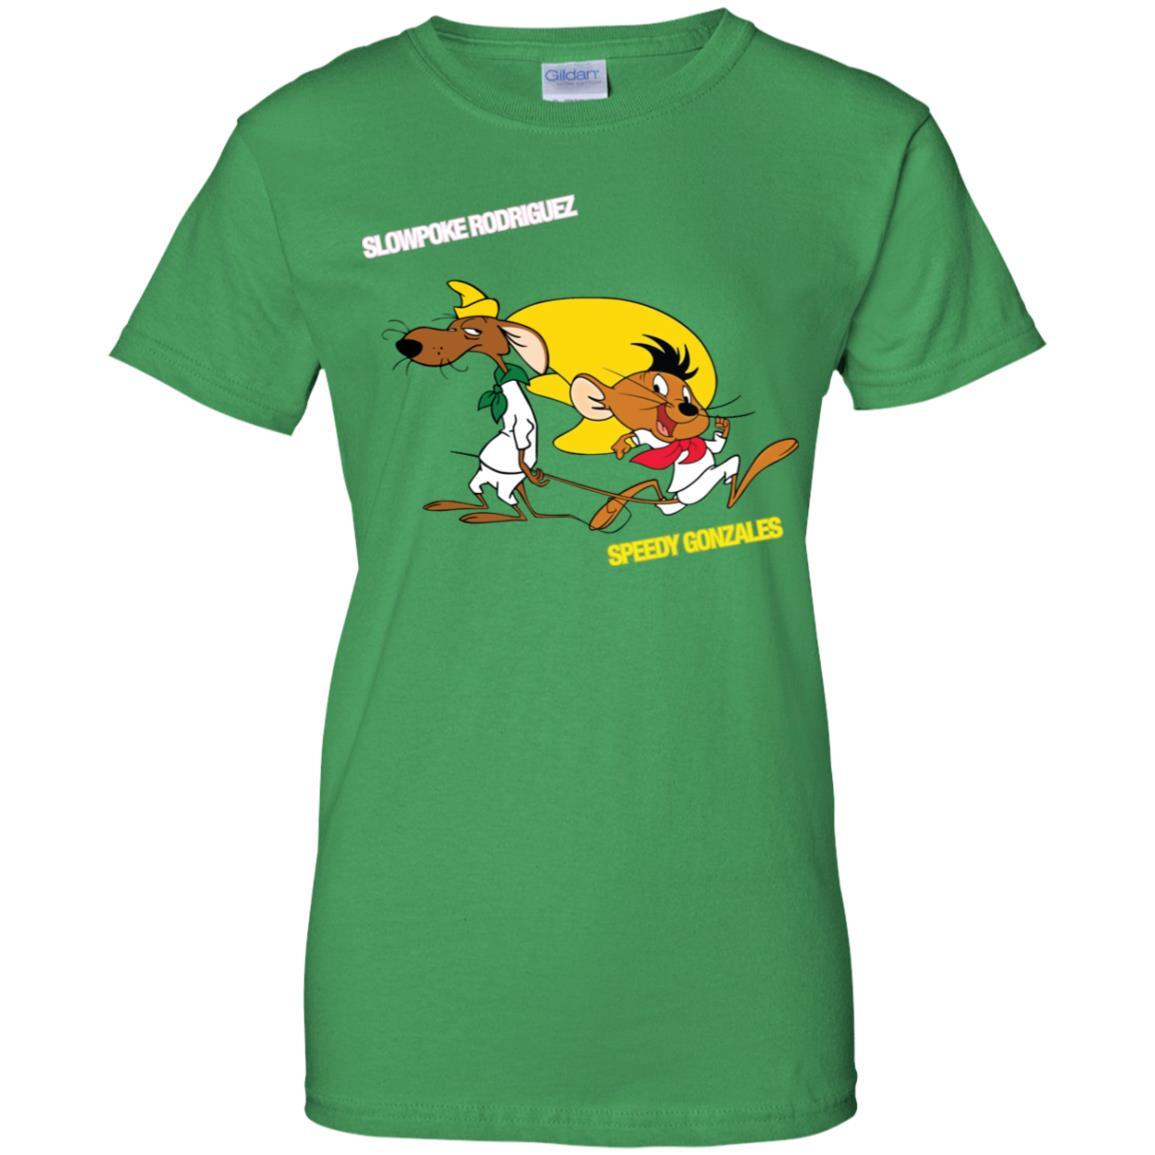 Slowpoke Rodriguez Speedy Gonzalez Funny Vintage Cartoon Tee T-Shirt G200L Gildan Ladies' 100% Cotton T-Shirt / Irish Green / 3XL